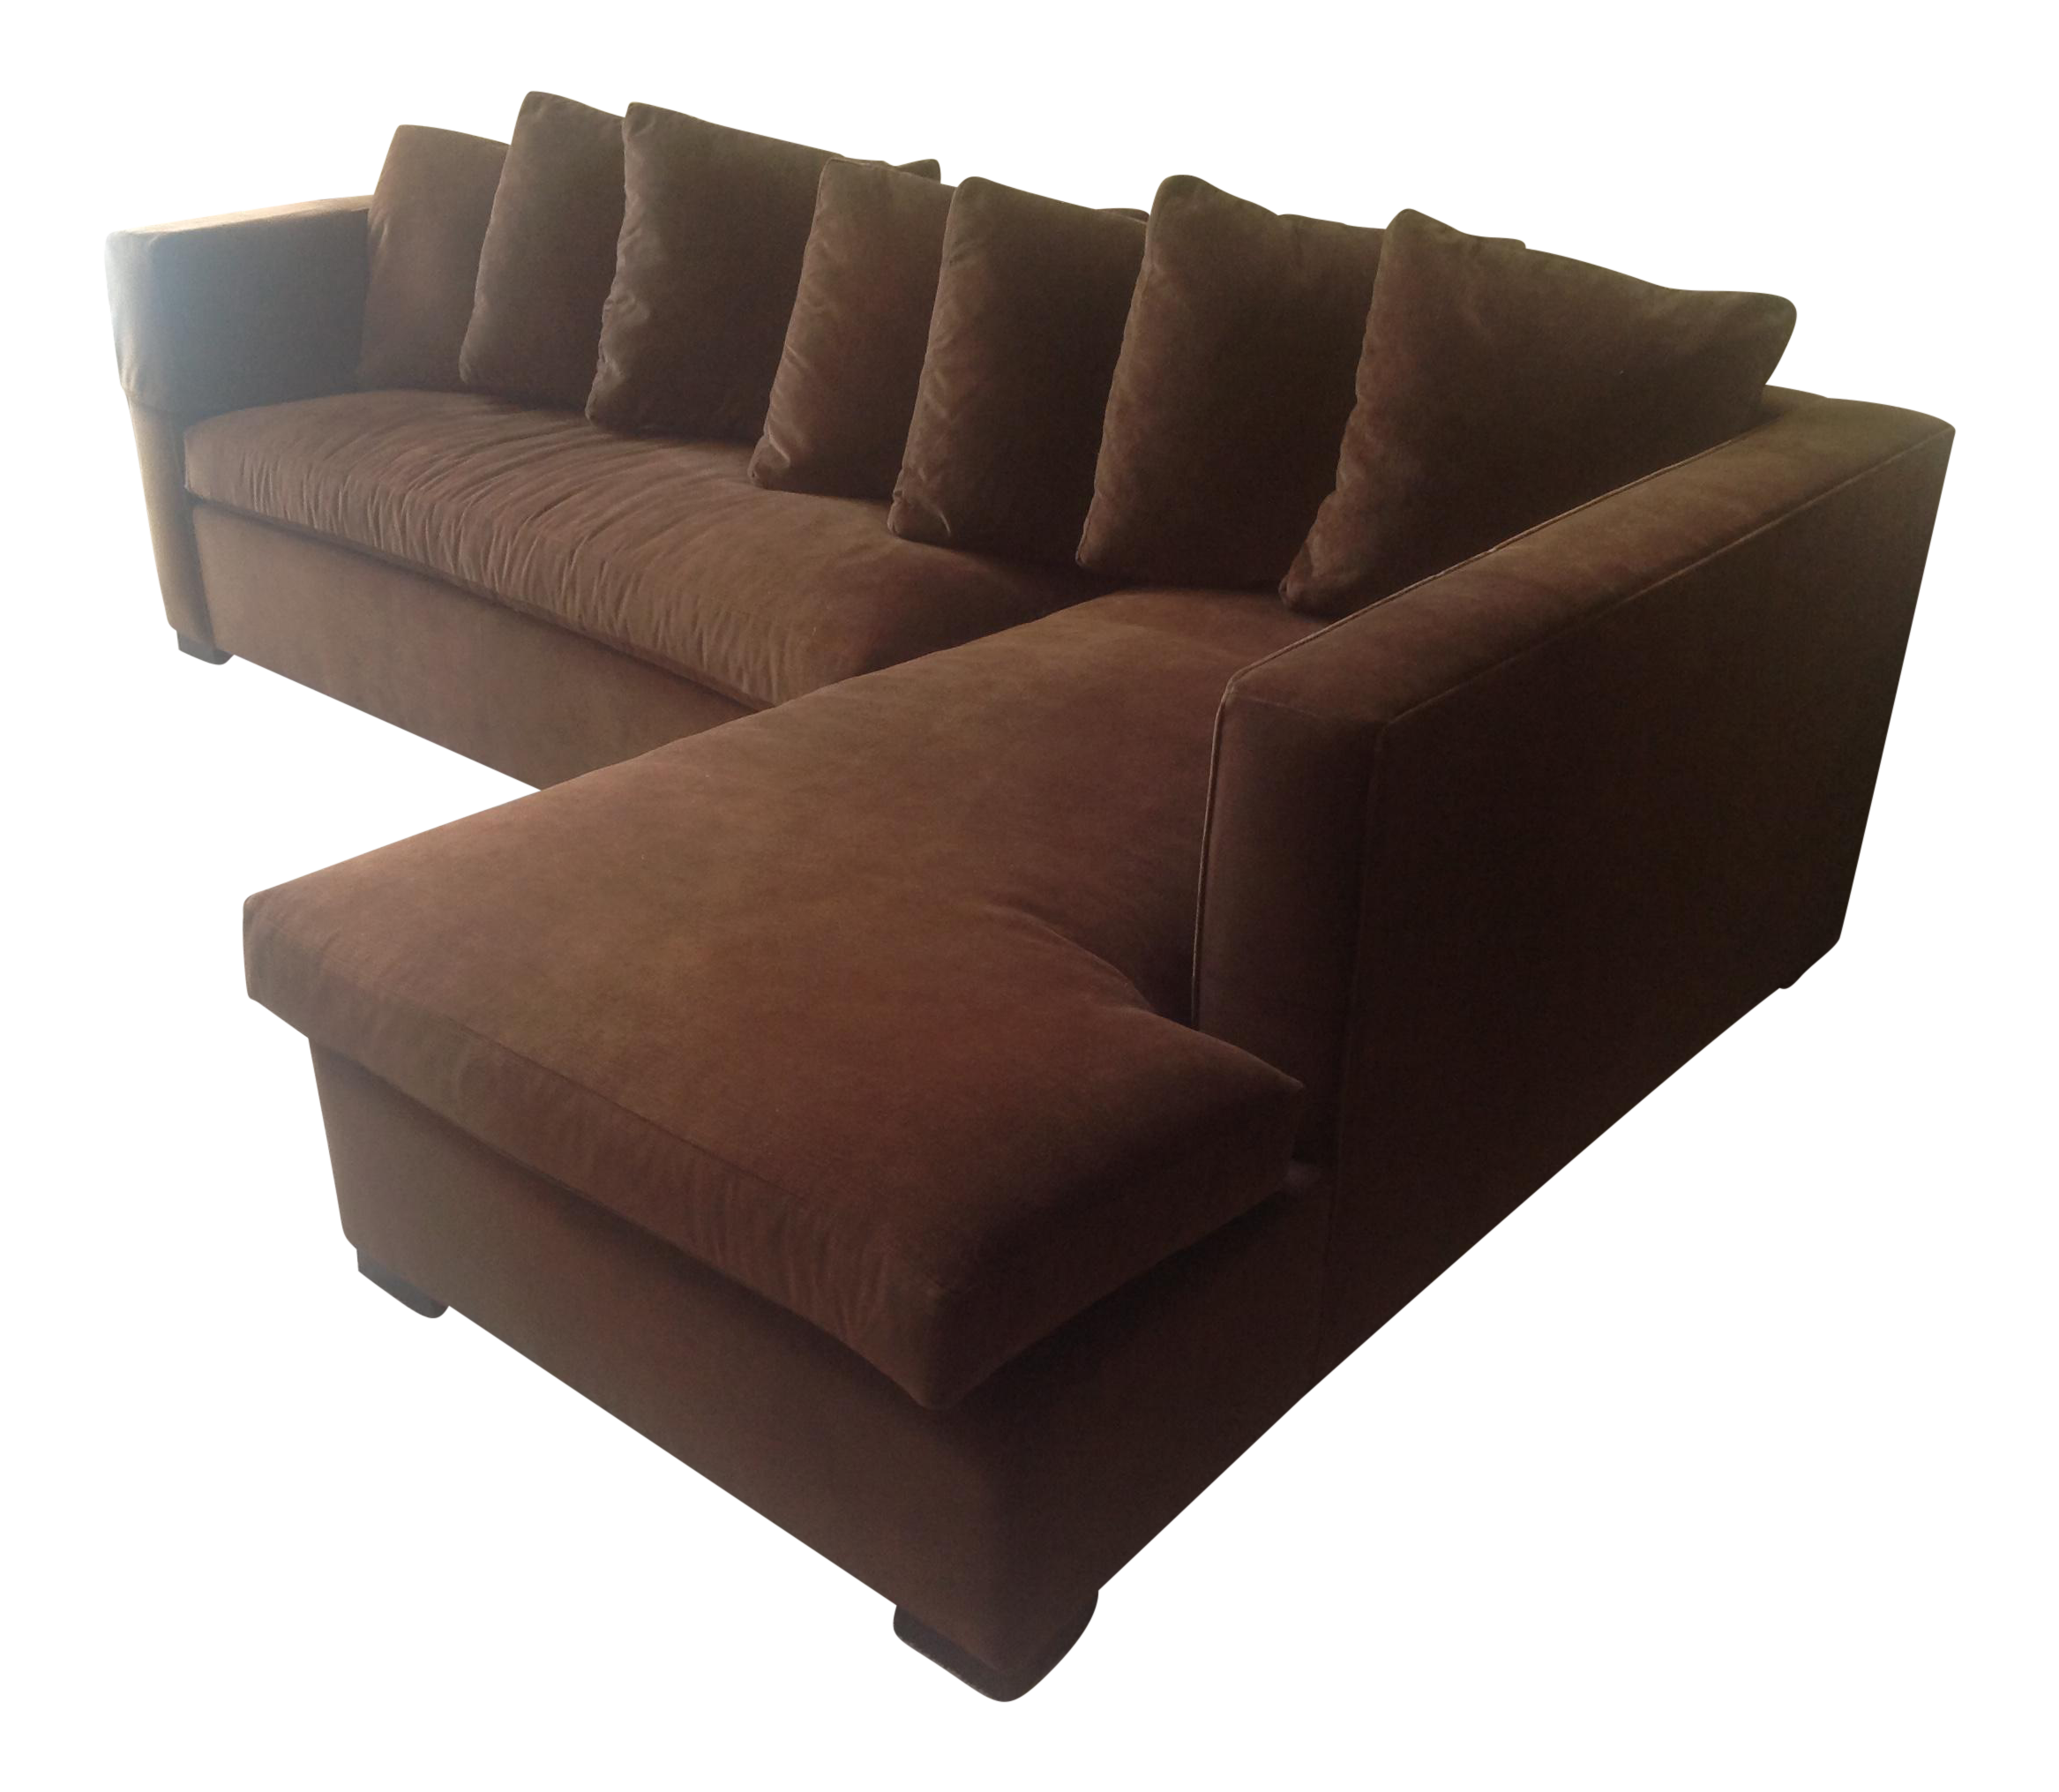 Hickory Chair Thomas Obrien For Hickory Chair Chocolate Brown Chaise Sectional